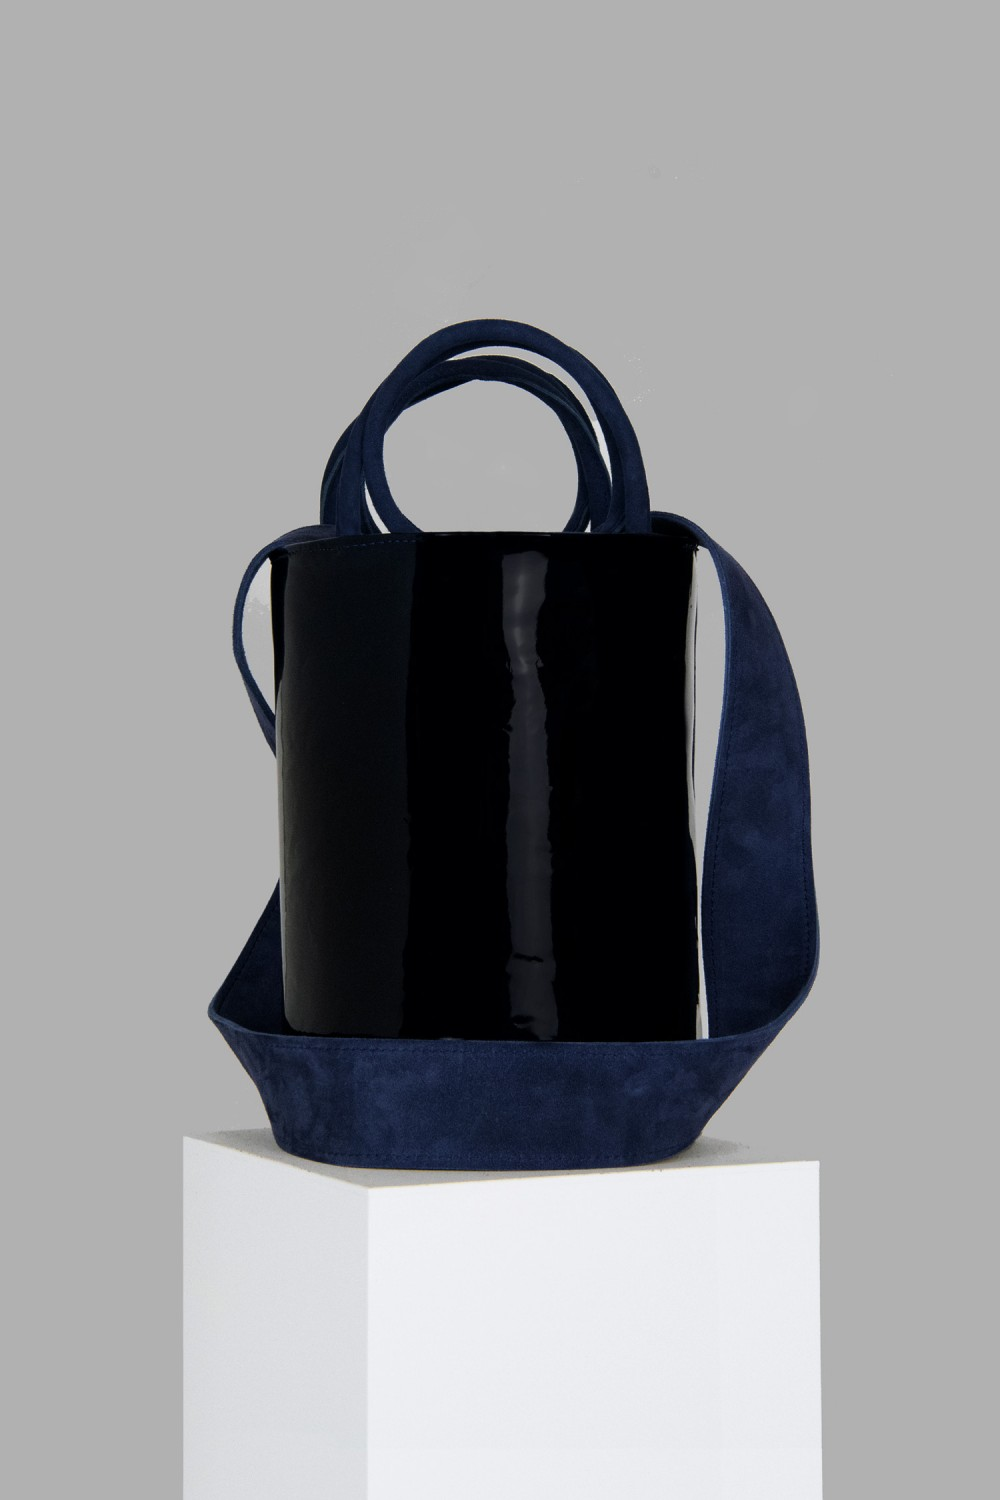 XL Kyklos Navy Patent Leather Bag